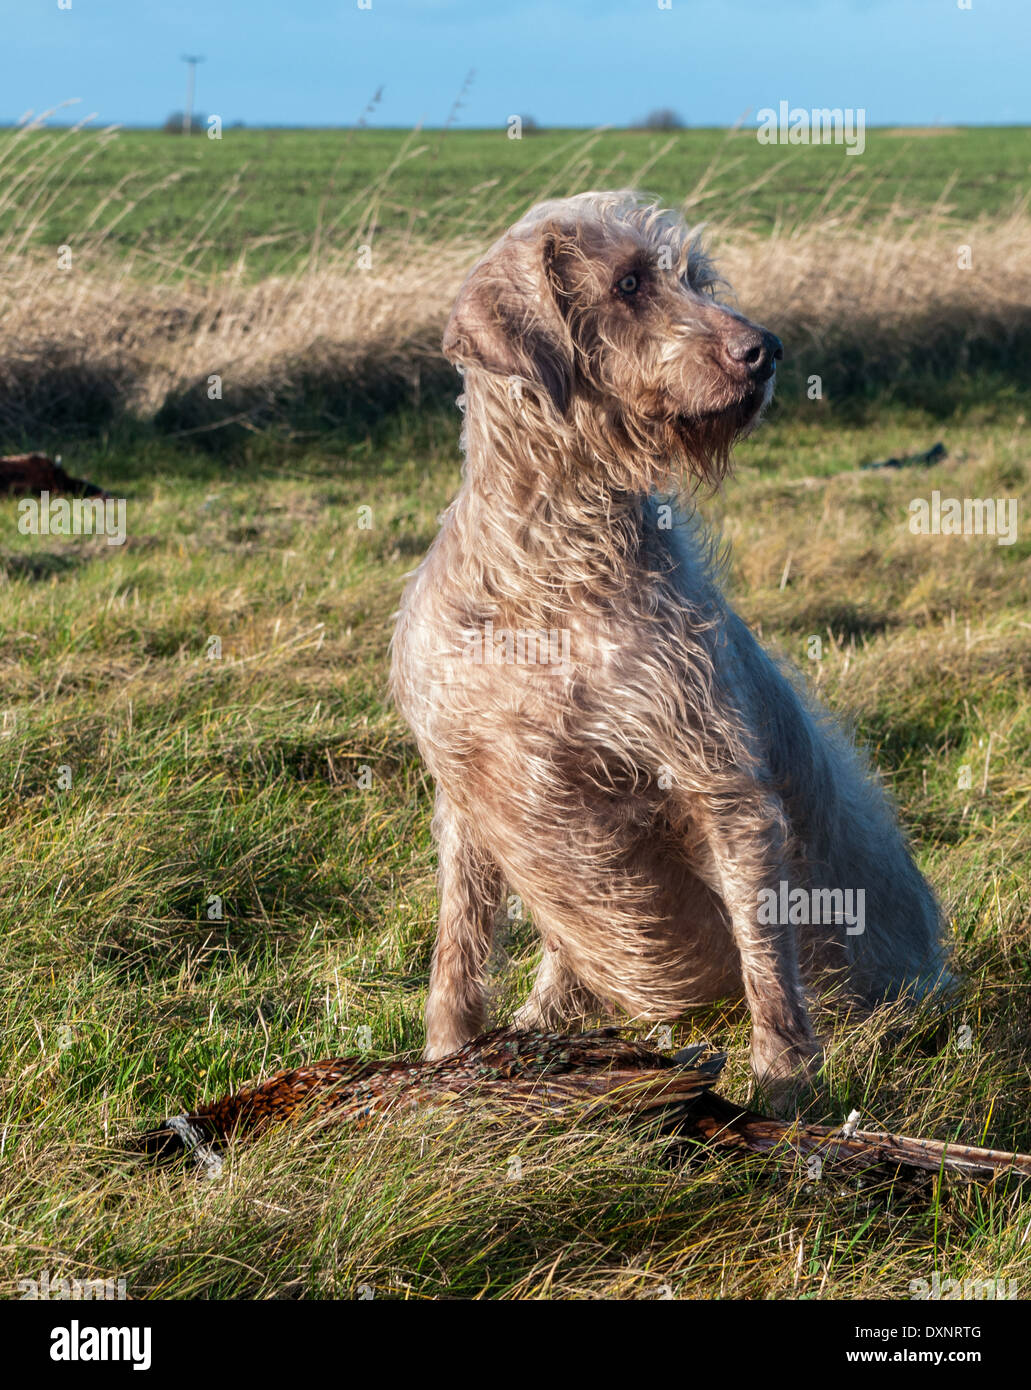 A Slovak Wirehaired Pointer, or Slovakian Rough-haired Pointer dog, with a pheasant - Stock Image